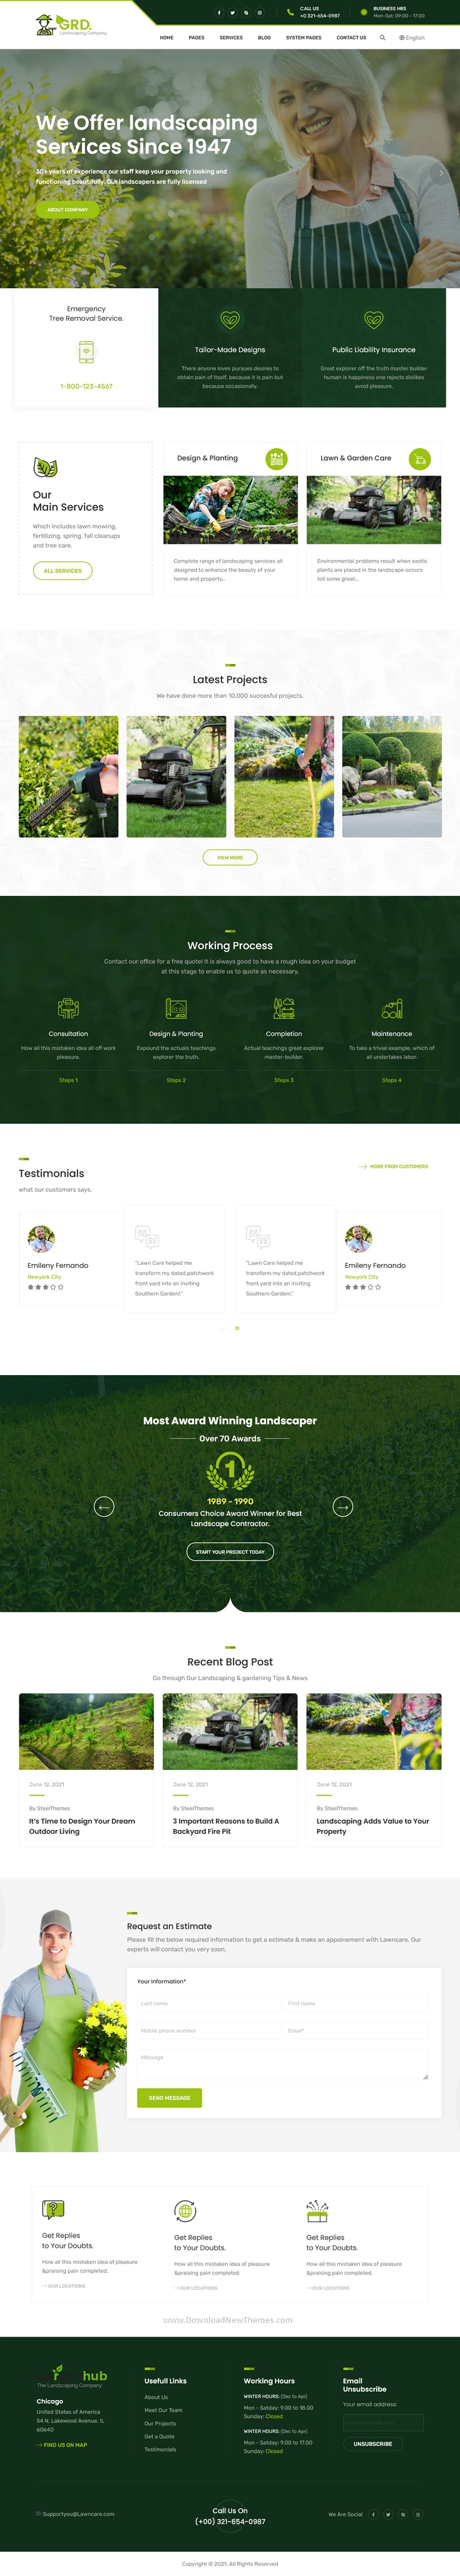 GRD - Lawn & Landscaping HubSpot Theme